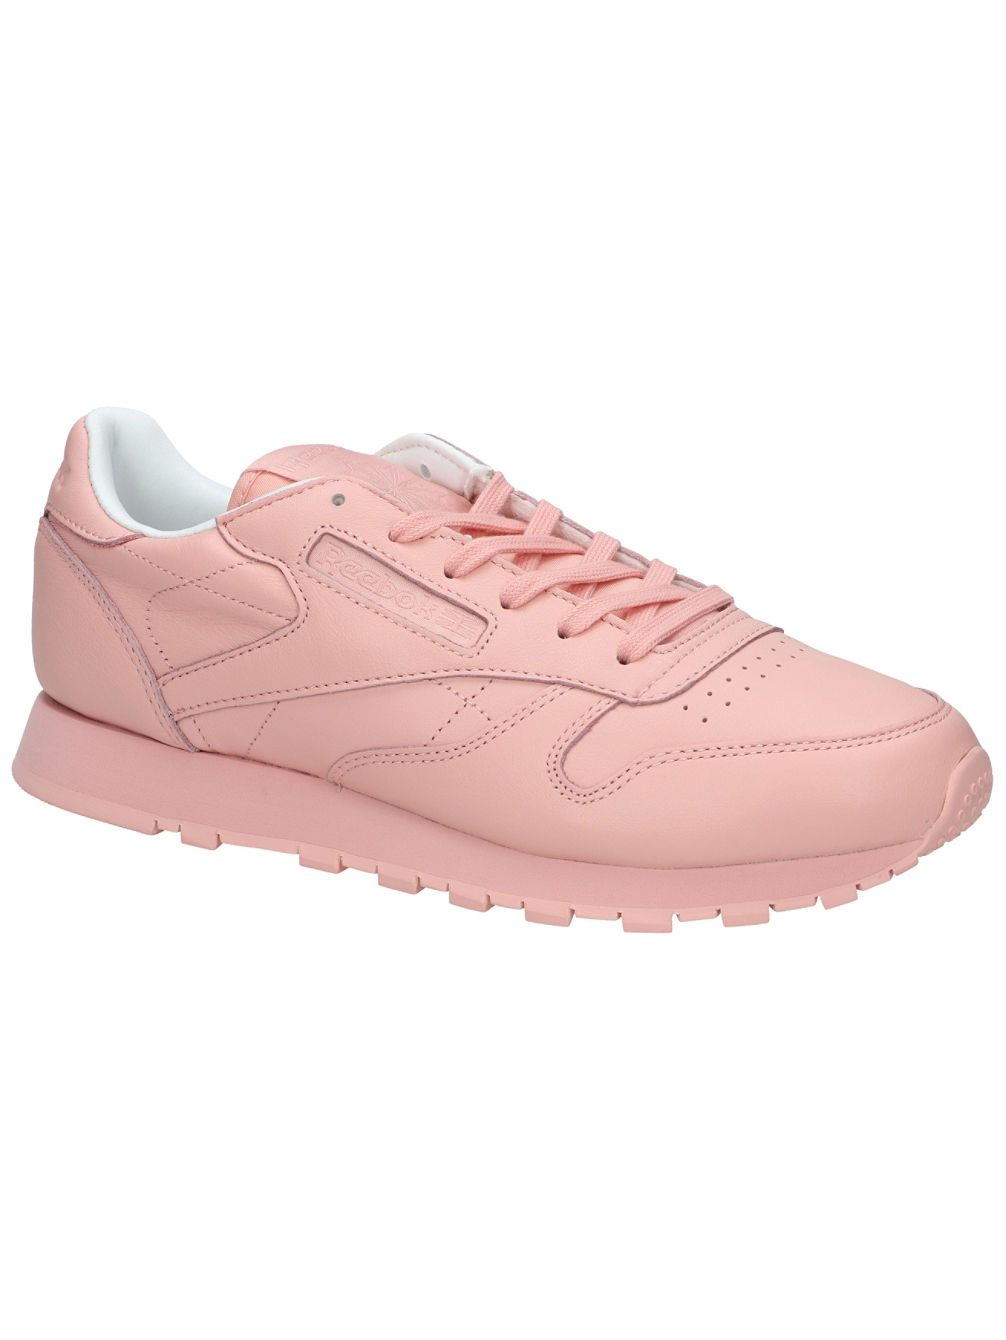 reebok-classic-leather-pastels-sneakers-women